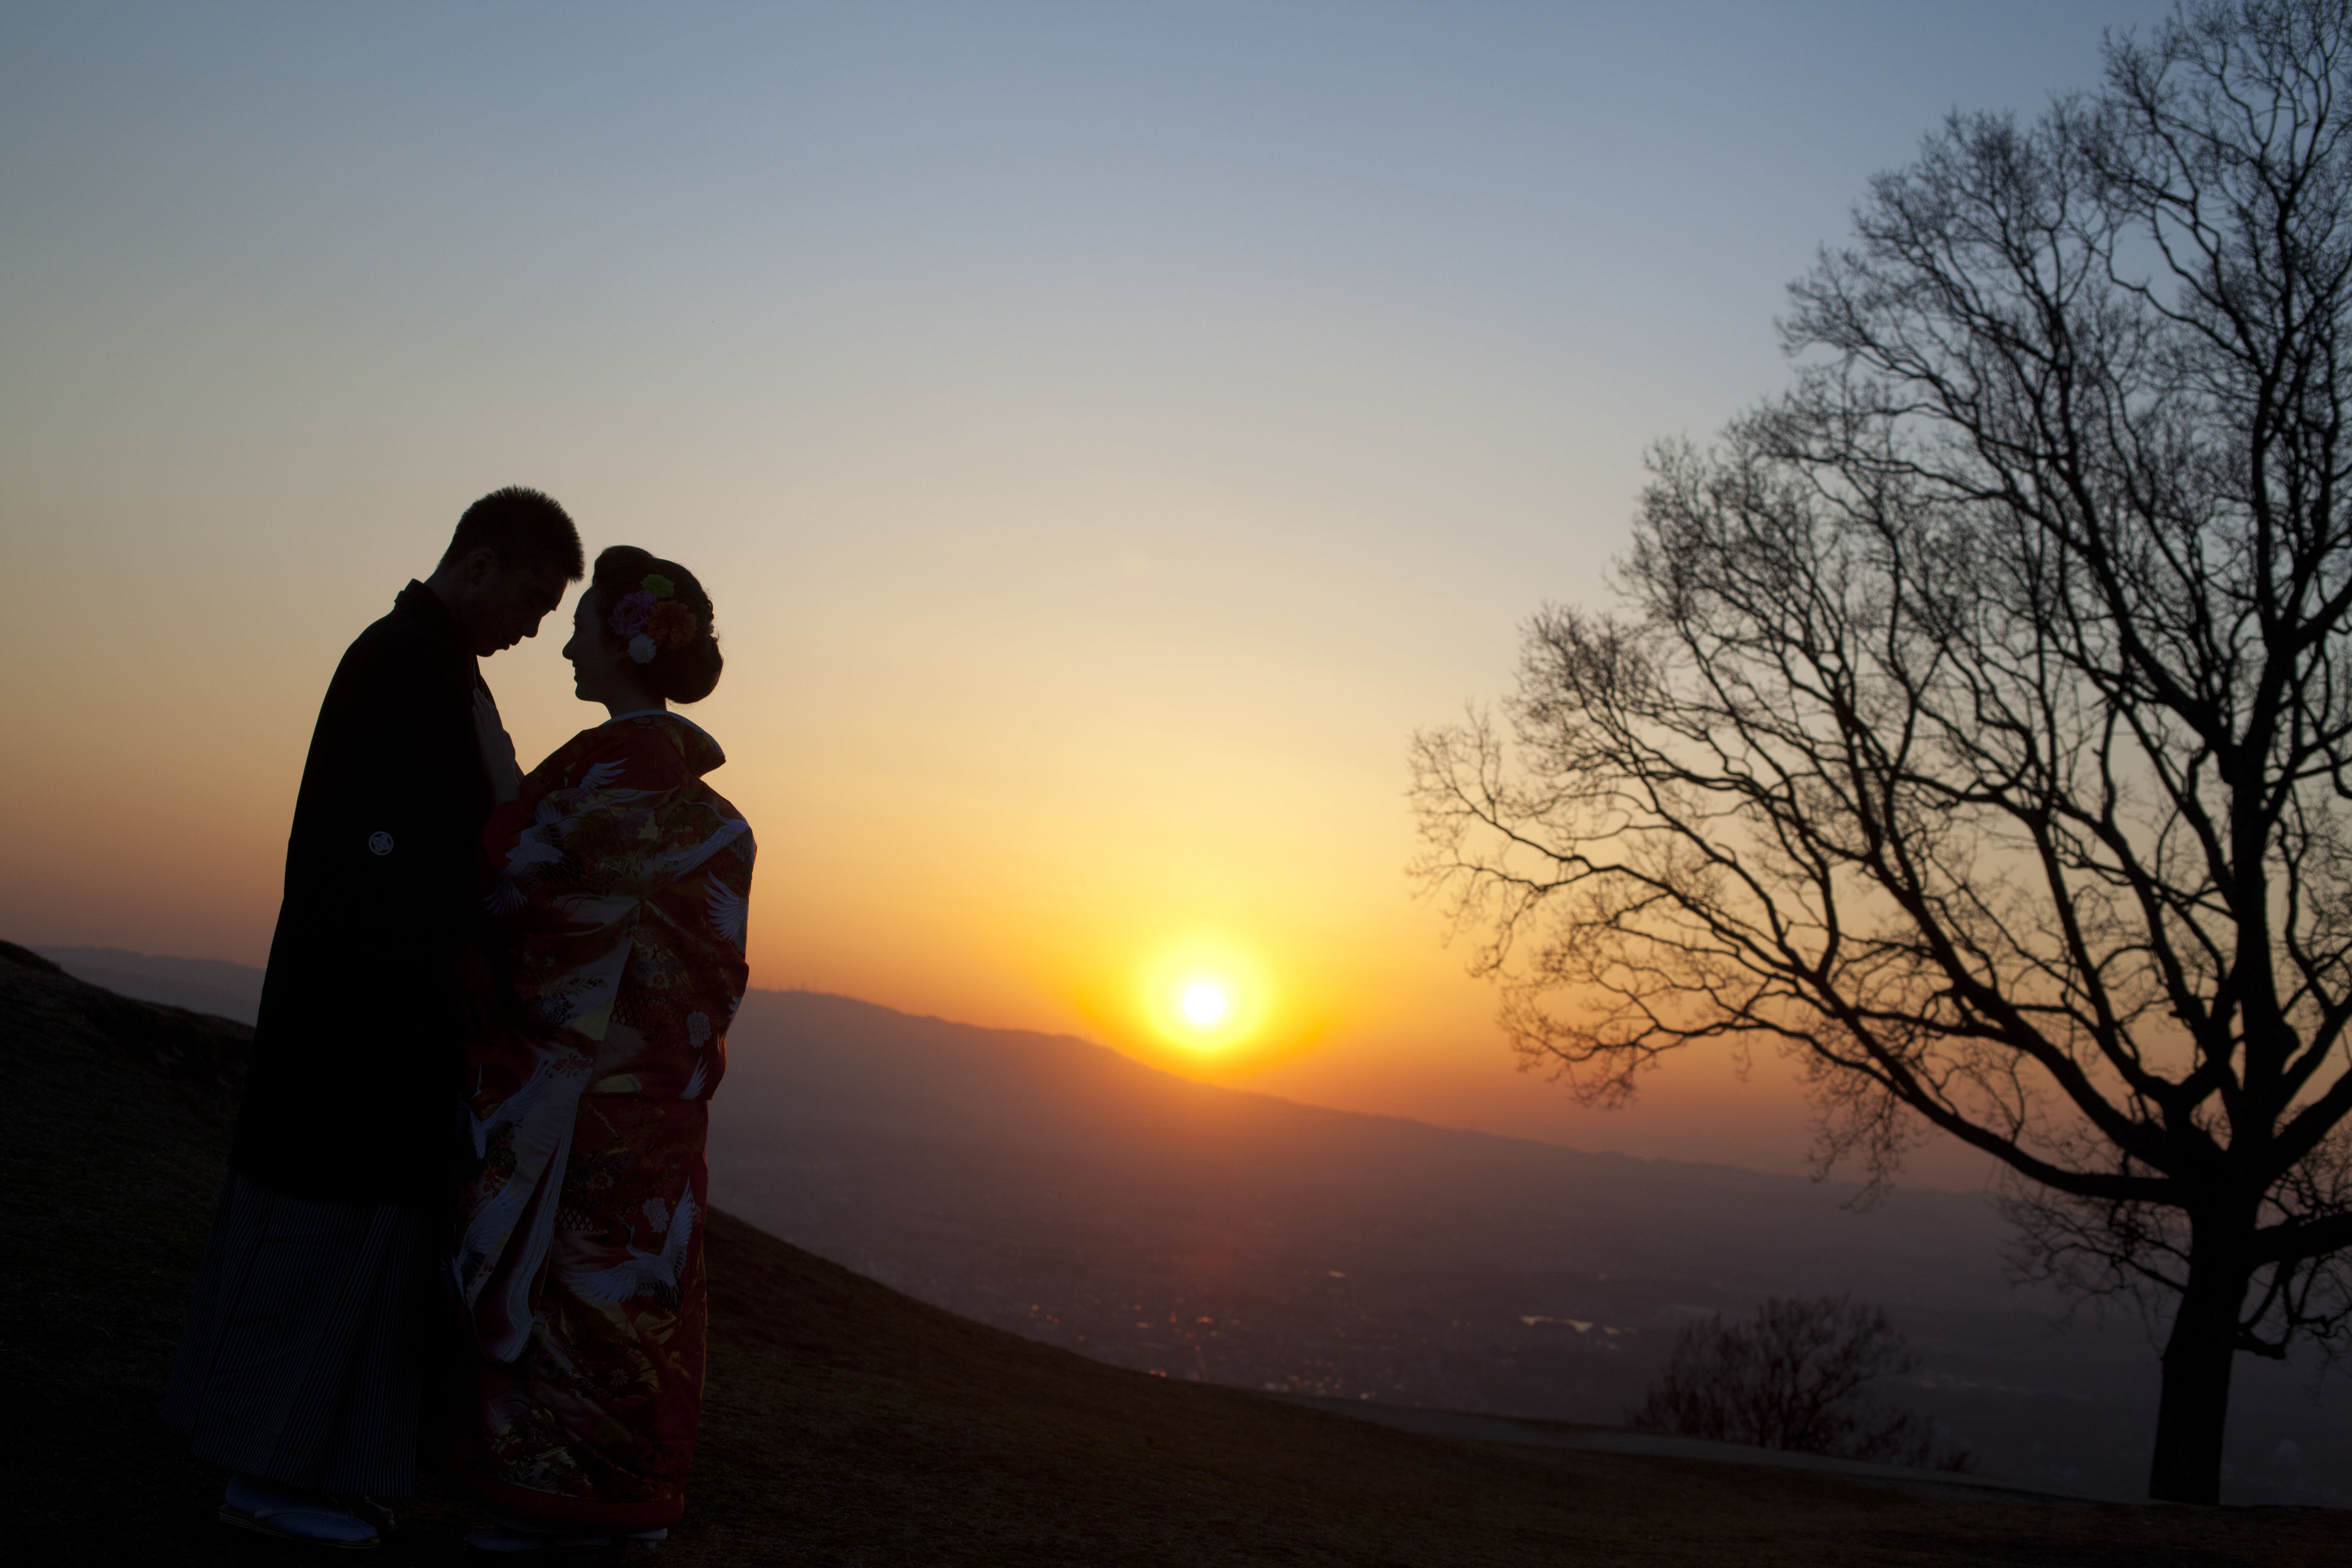 two people, togetherness, sunset, love, leisure activity, couple - relationship, lifestyles, romance, real people, bonding, beauty in nature, tree, men, nature, friendship, scenics, outdoors, sky, sun, people, day, adult